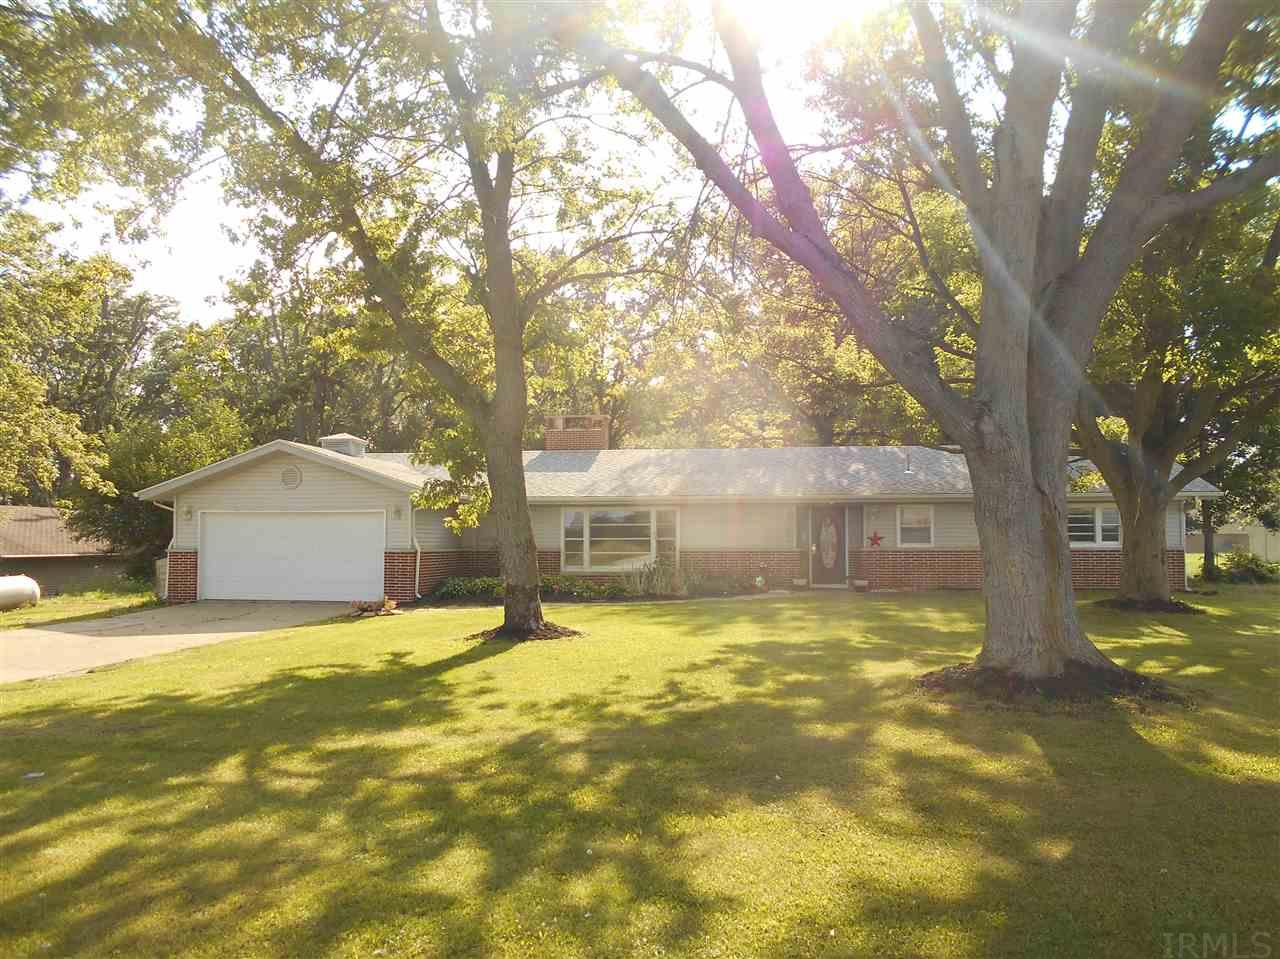 4882 State Road 1, Butler, IN 46721